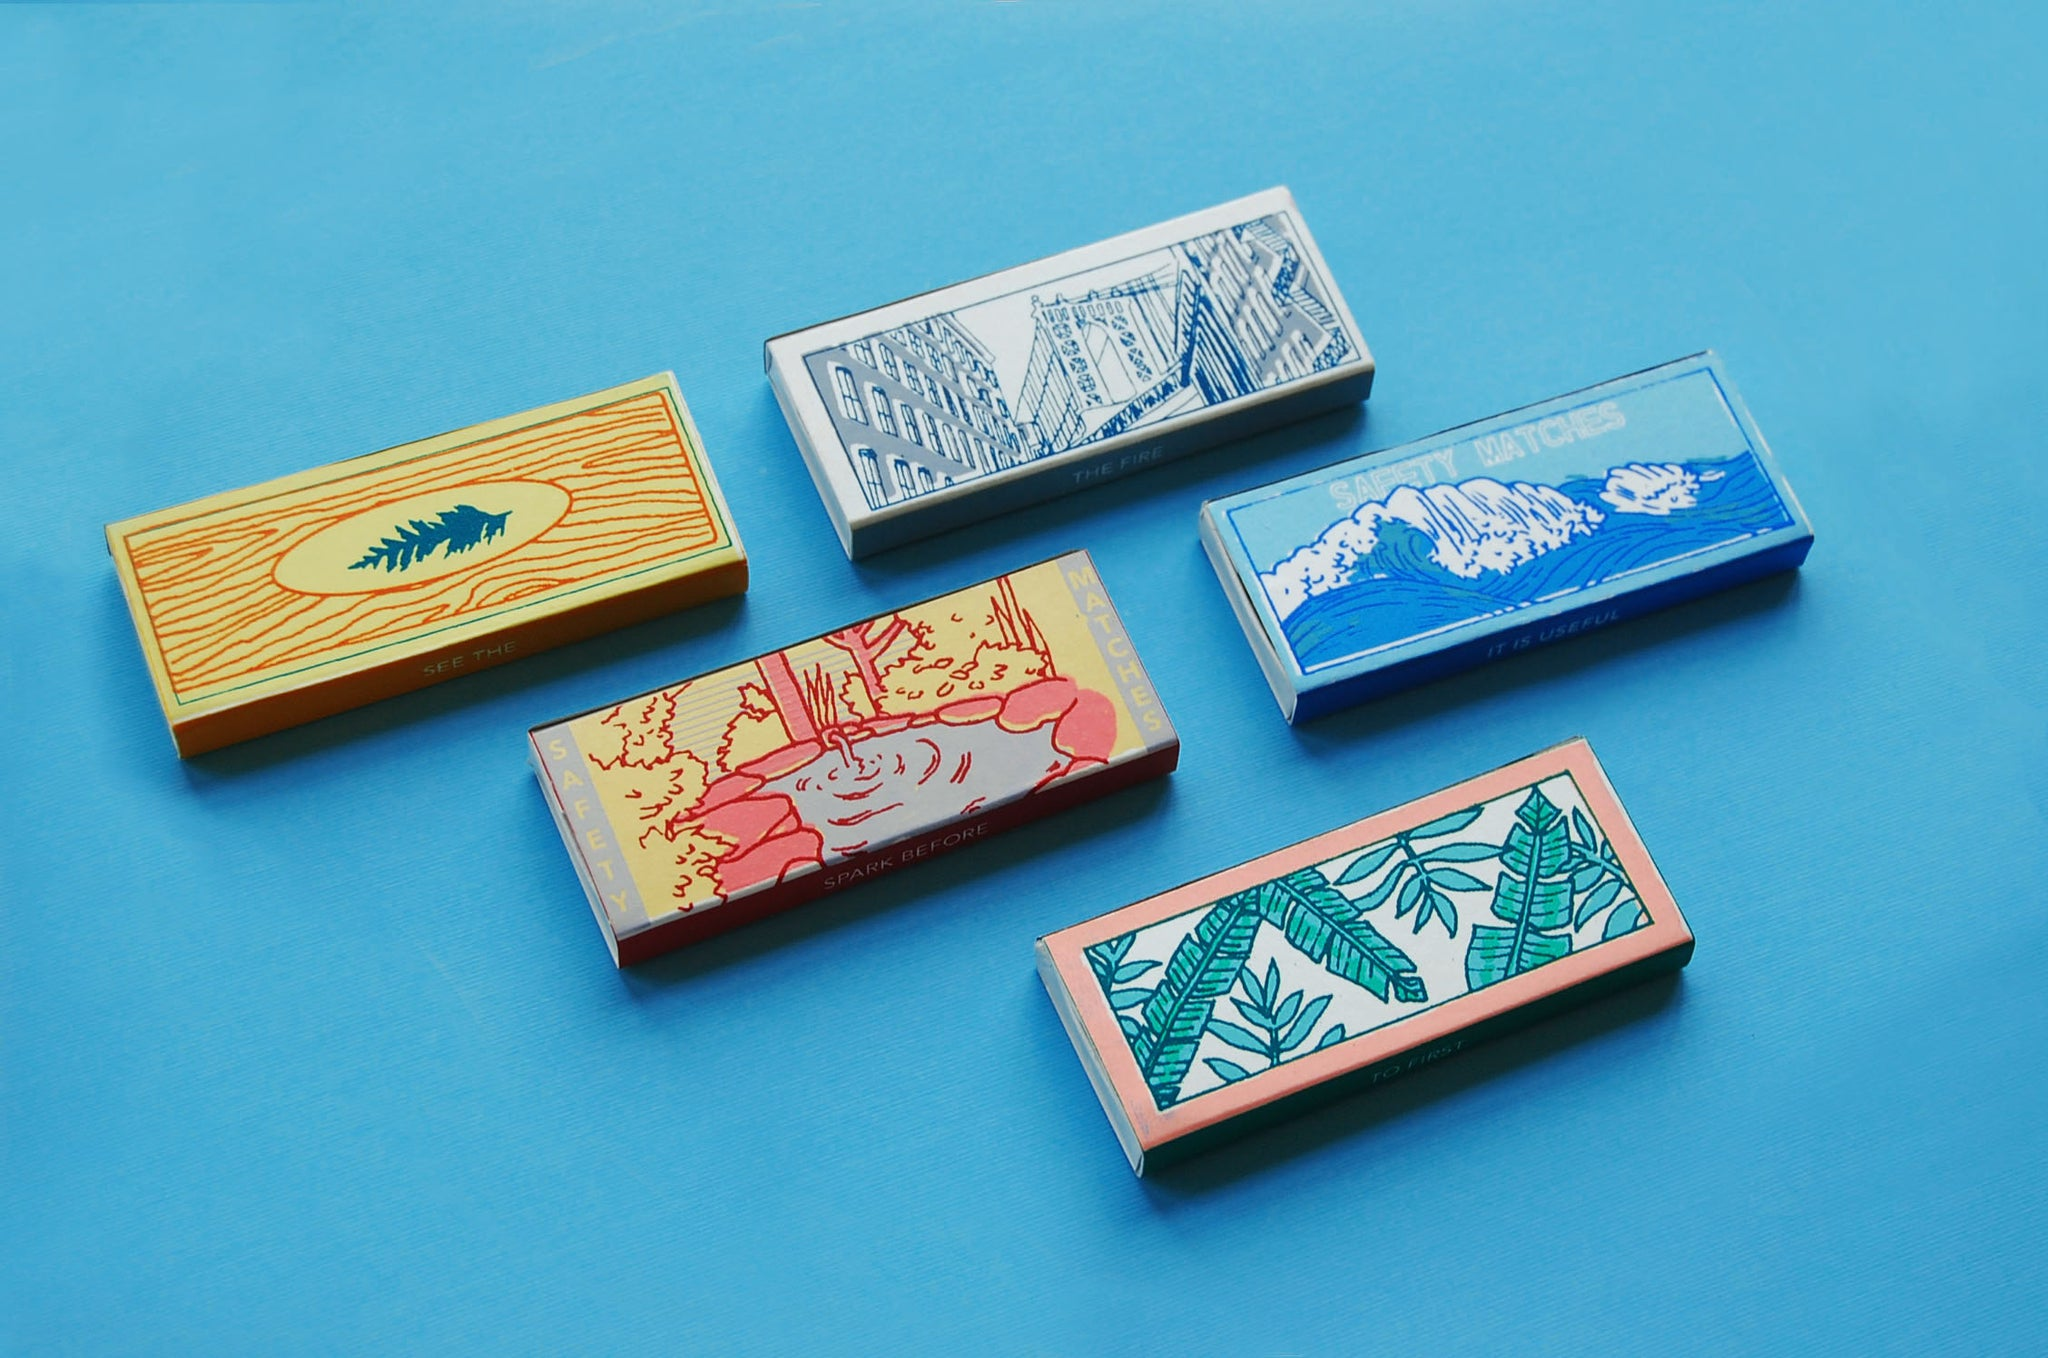 Keap limited edition japanese inspired matchboxes Objectify